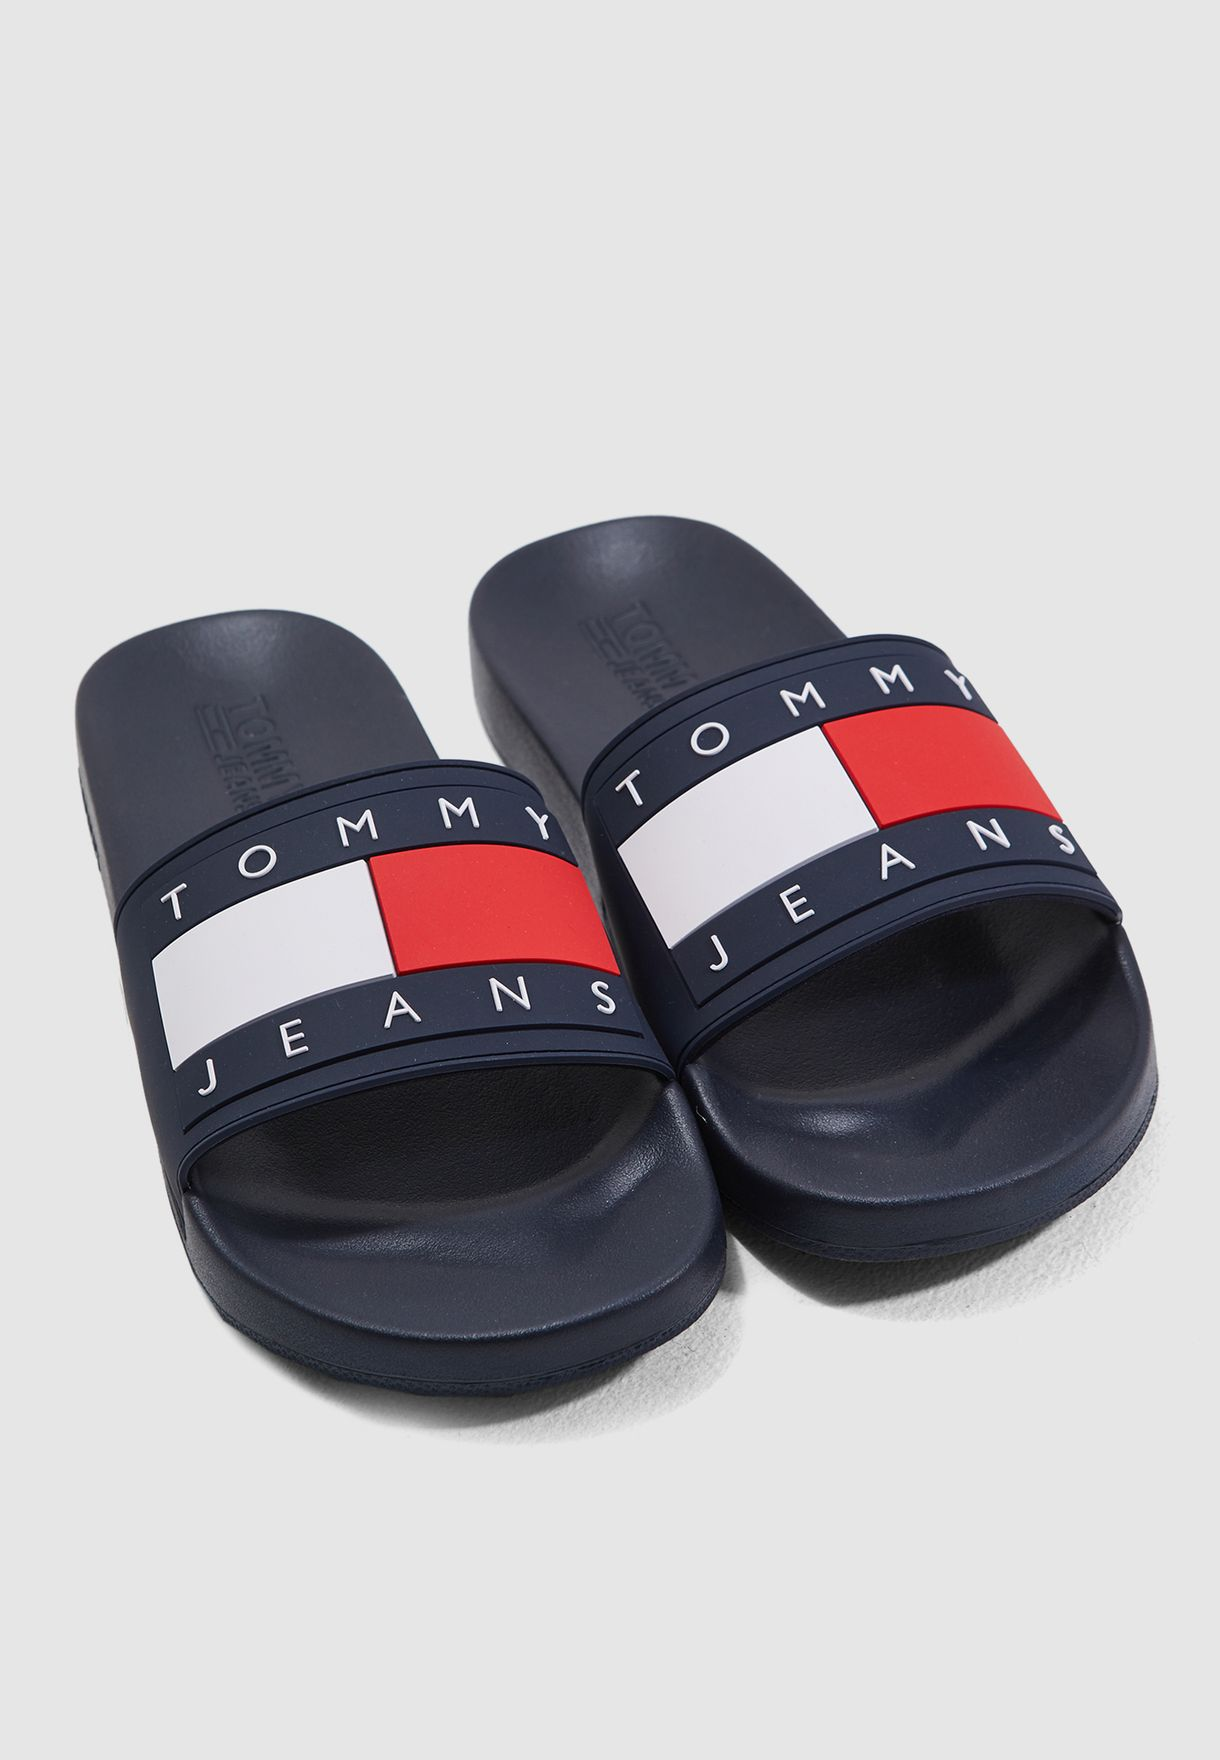 TOMMY HILFIGER FLAG Slides Sandals Flip Flops Pool Navy